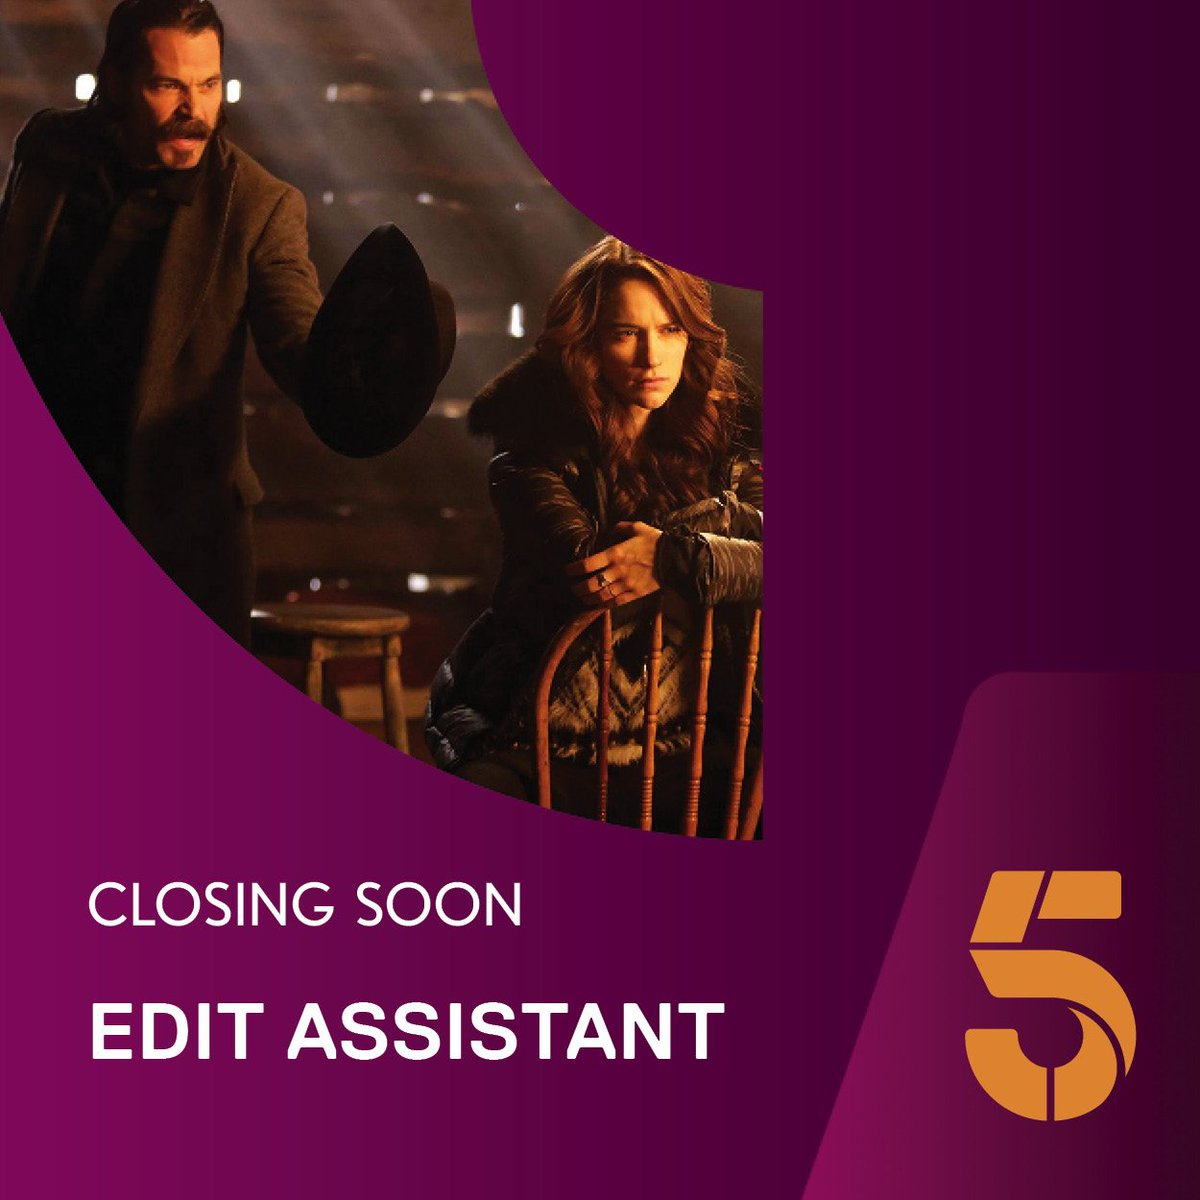 viacom talent on closing soon channel s in house viacom talent on closing soon channel 5 s in house post production looking for an editassistant to join their team t co lmdu60szbs